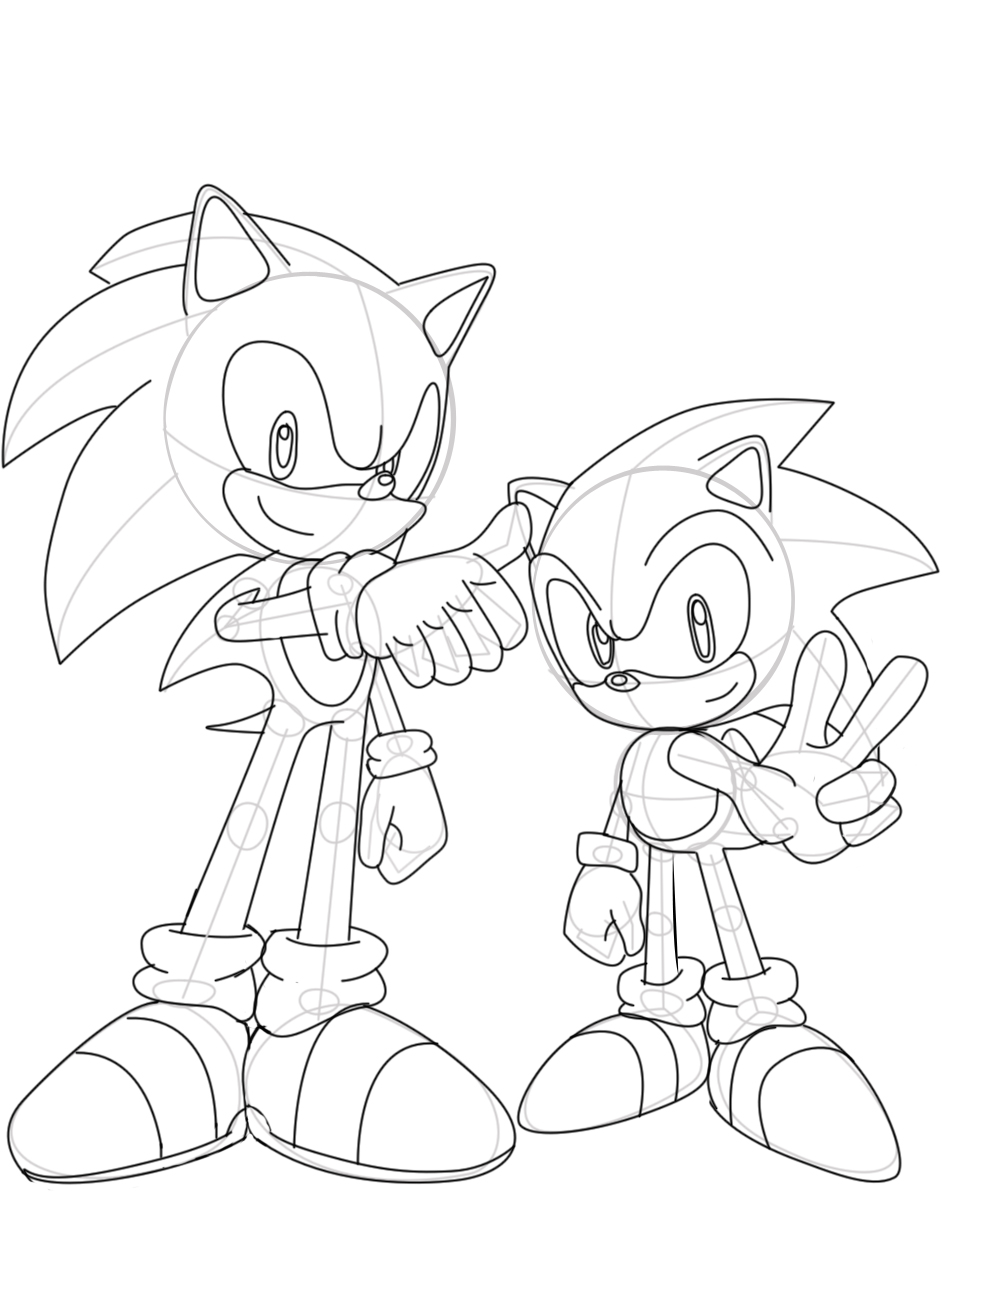 sonic generations lineart by sonicwindartist on deviantart